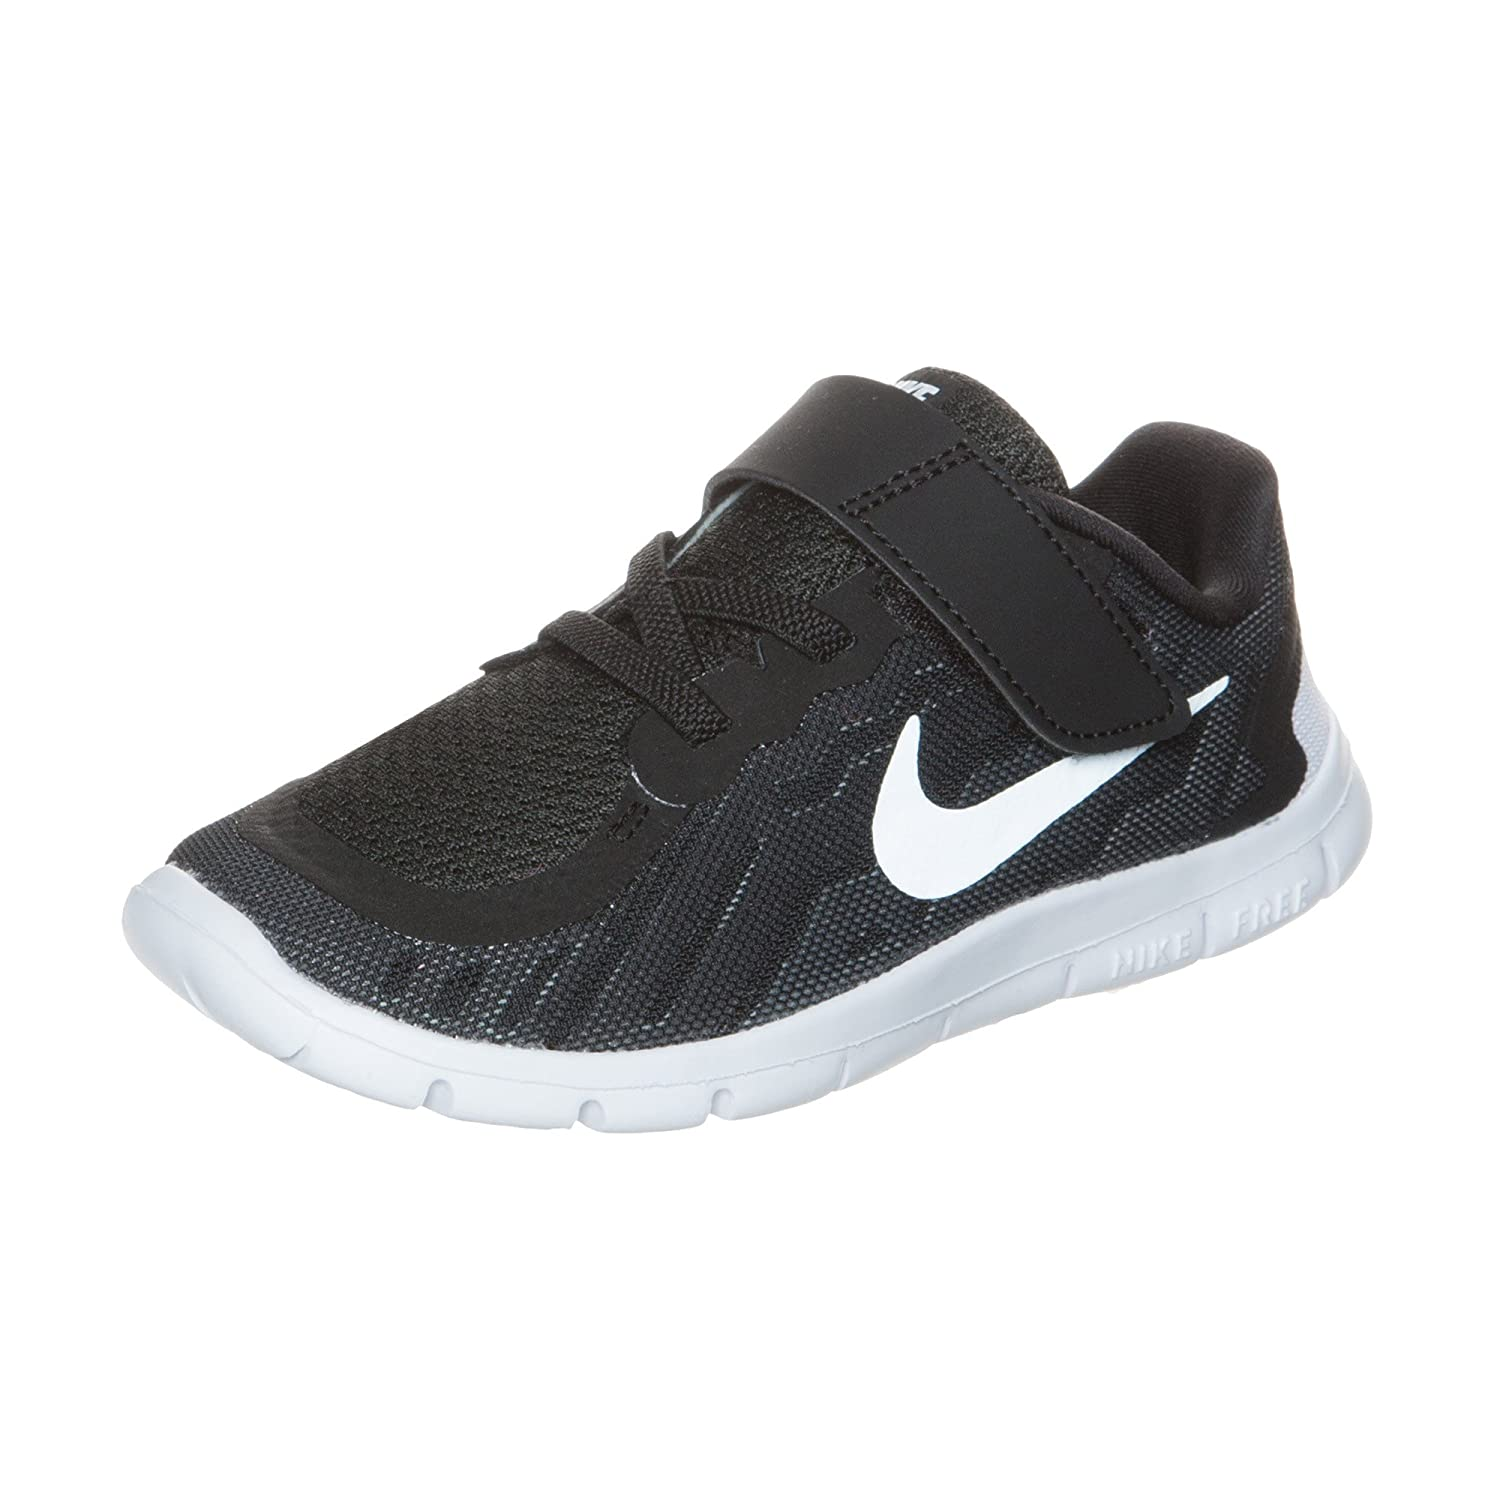 a9957aeddb1e NIKE Free 5 (TDV) Black White Dark Grey 725107-001 (4 M Toddler)   Amazon.co.uk  Shoes   Bags